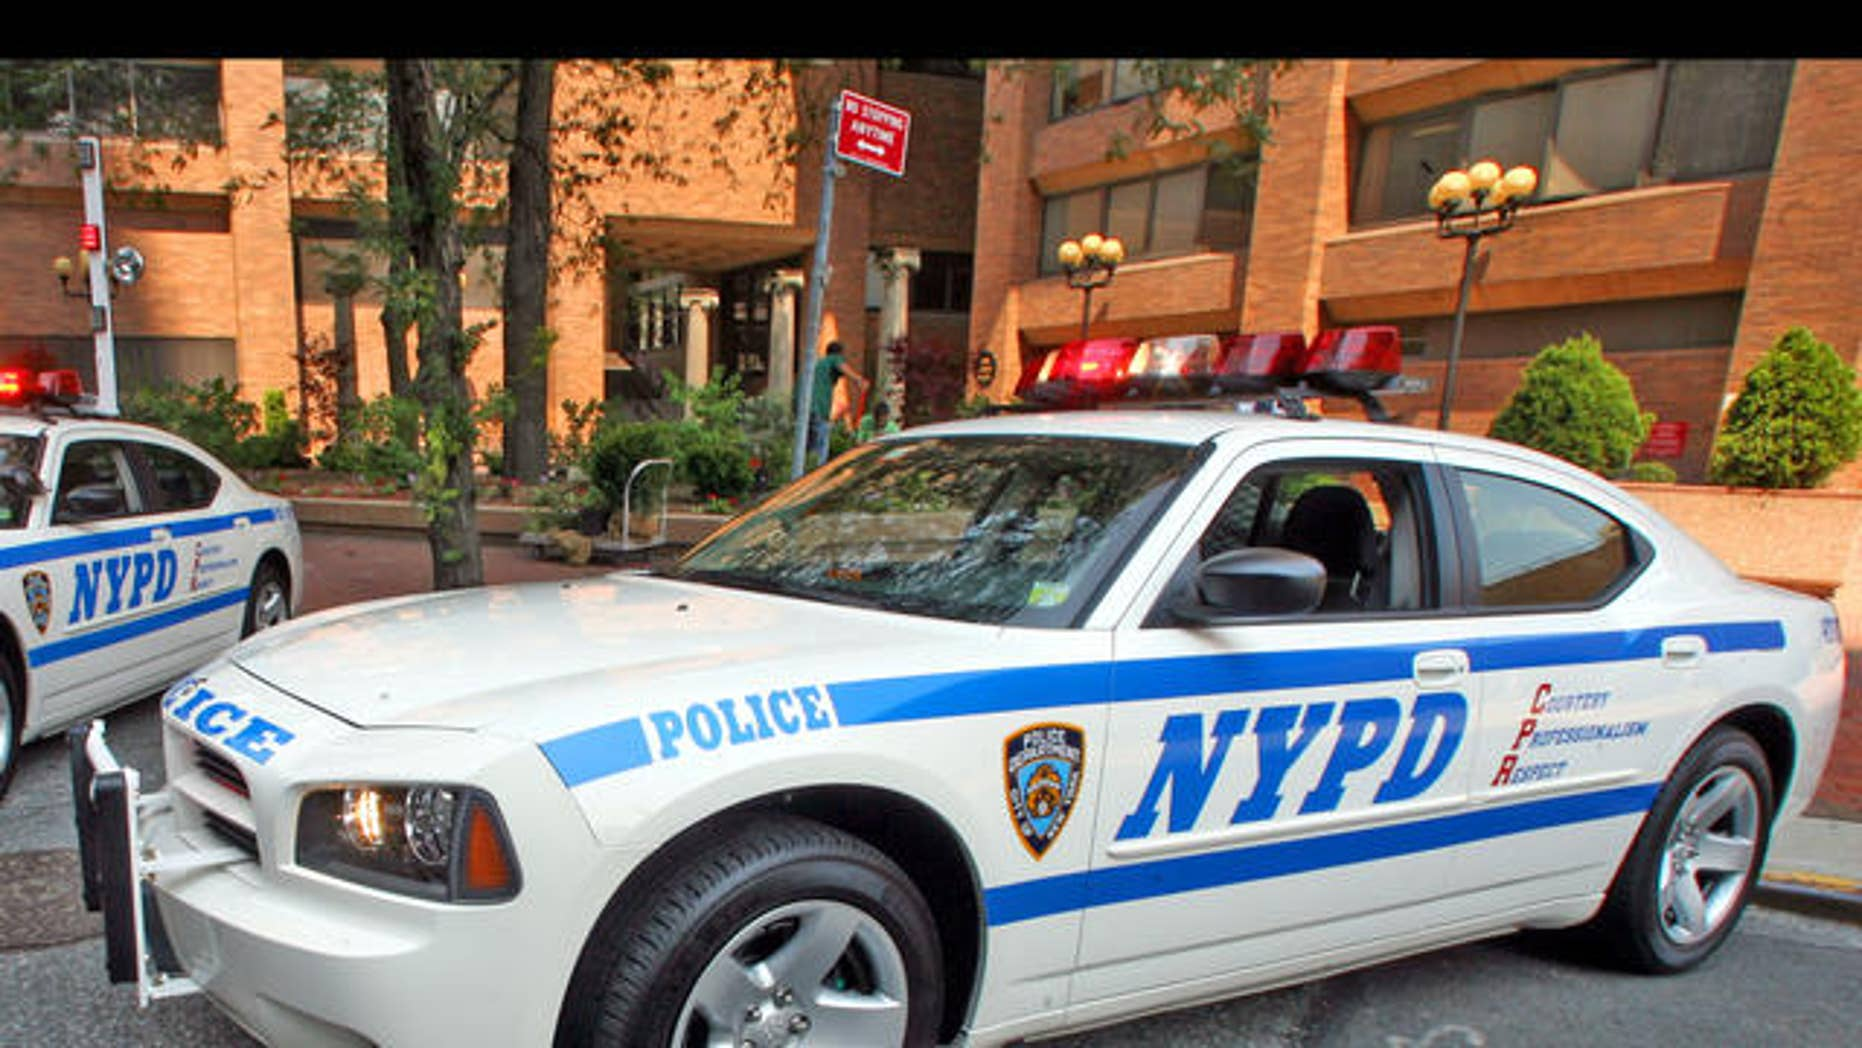 The new police cruisers, a 2006 Dodge Charger, are on display at New York City Police Department's headquarters in New York,  Monday, Aug. 14, 2006.  Police Commissioner Raymond Kelly unveiled the new police cruiser during a news conference Monday.  (AP Photo/Mary Altaffer)